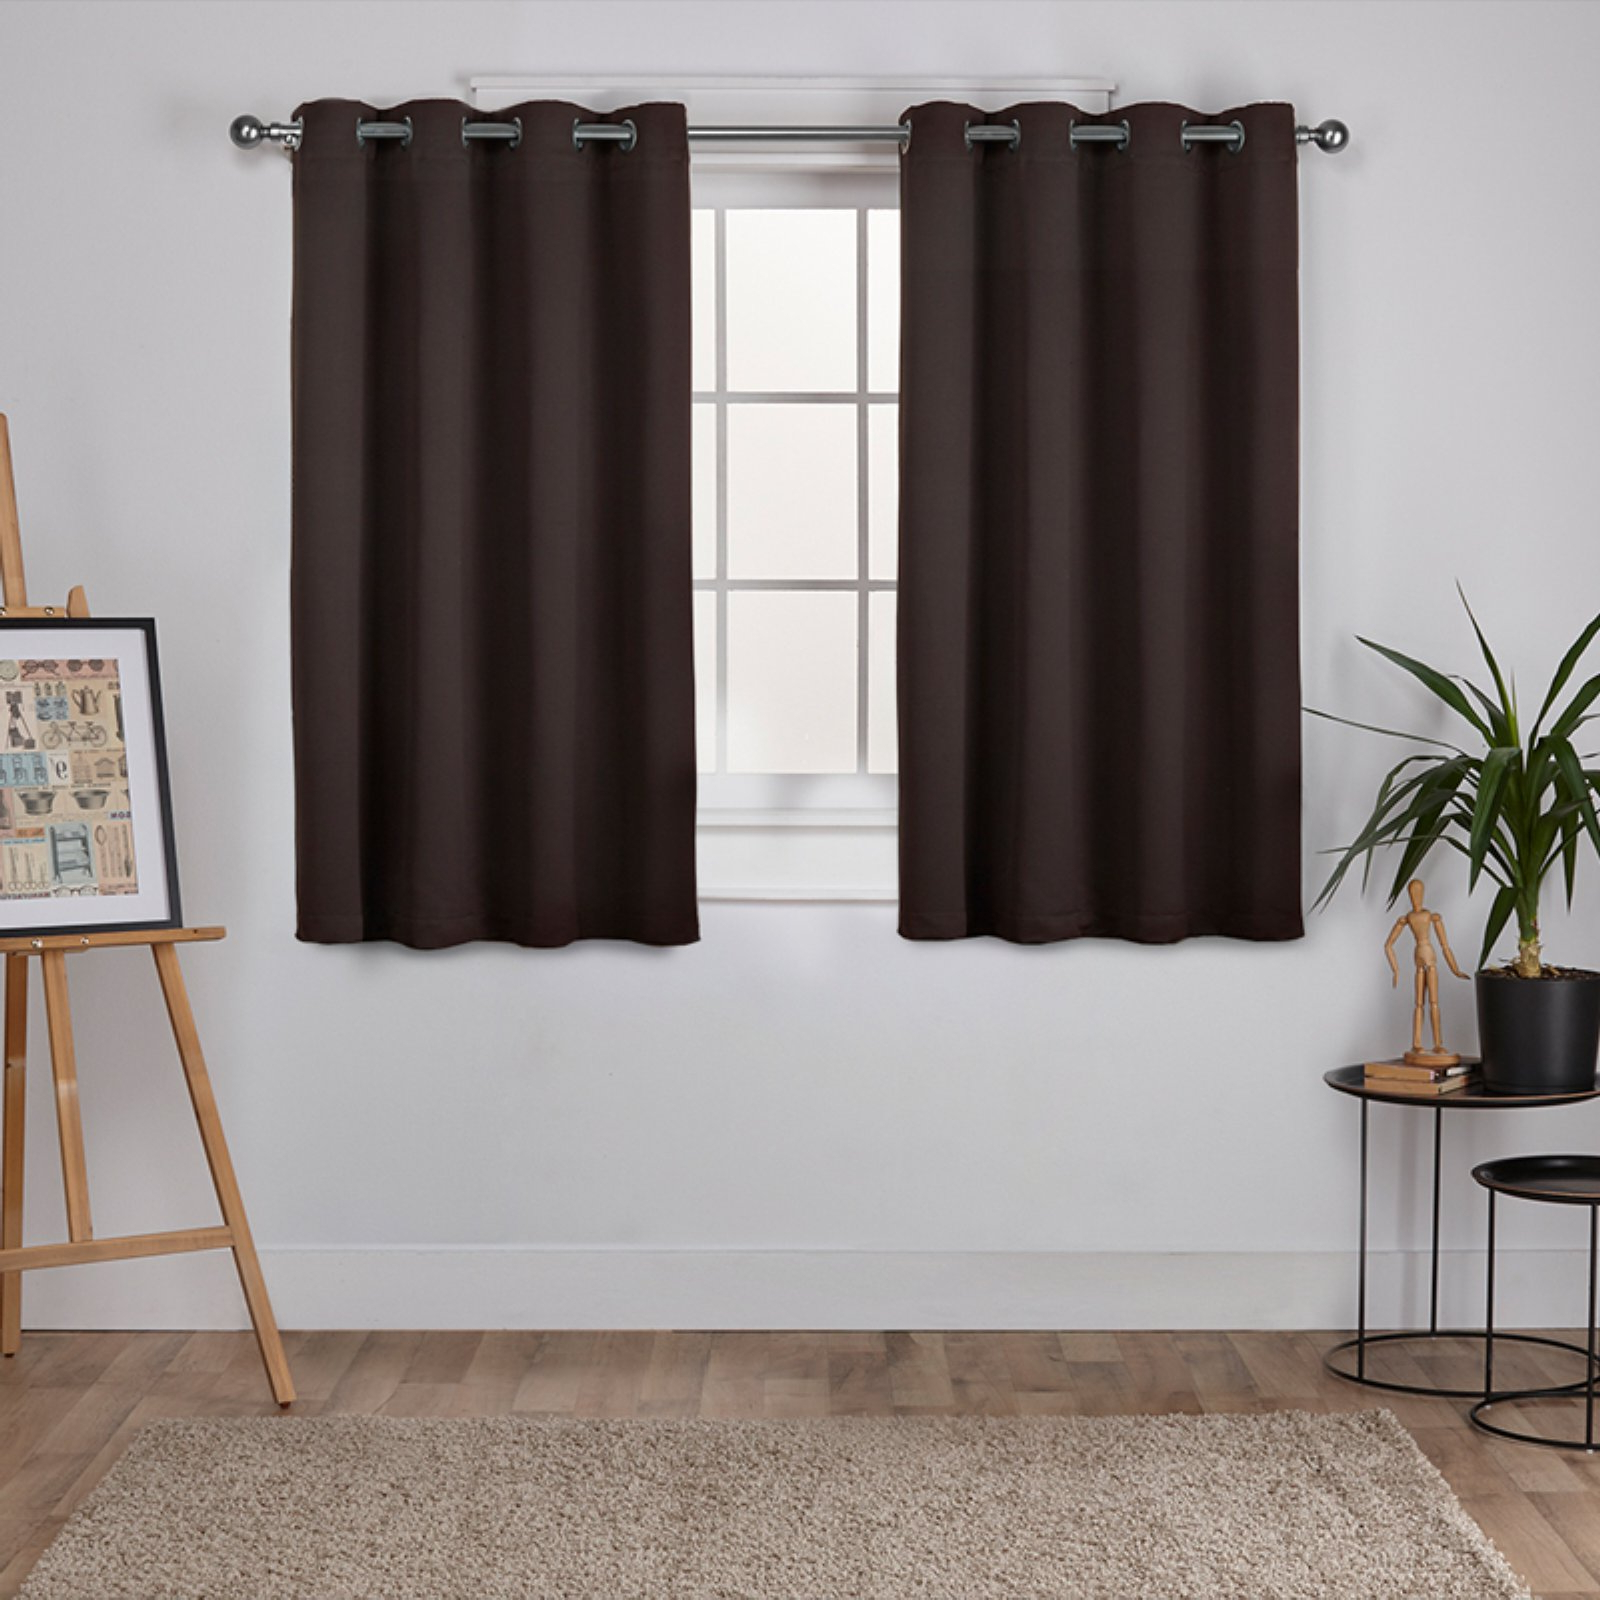 Antique Silver Grommet Top Thermal Insulated Blackout Curtain Panel Pairs Intended For Best And Newest Exclusive Home Sateen Twill Weave Blackout Window Curtain Panel Pair With Grommet Top (View 18 of 20)